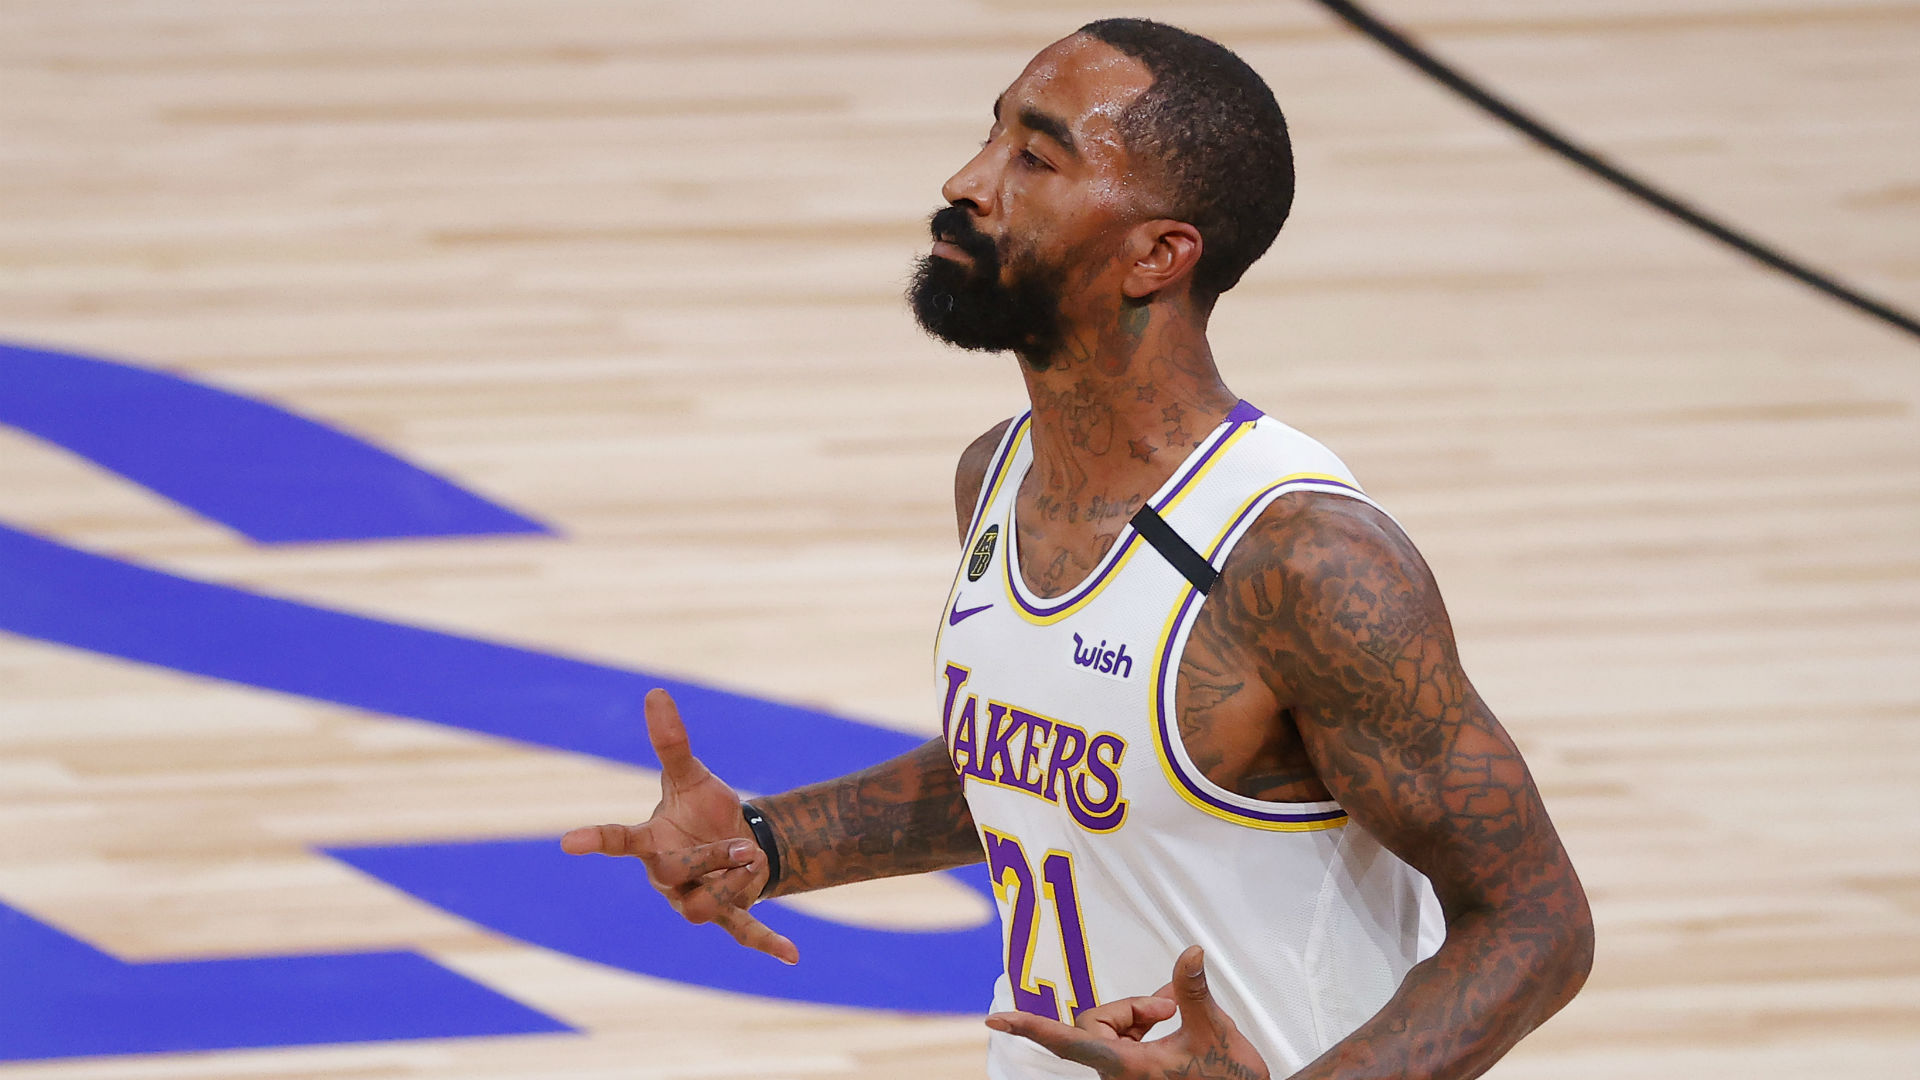 Lakers' J.R. Smith goes shirtless (again) and so do Lakers after ...